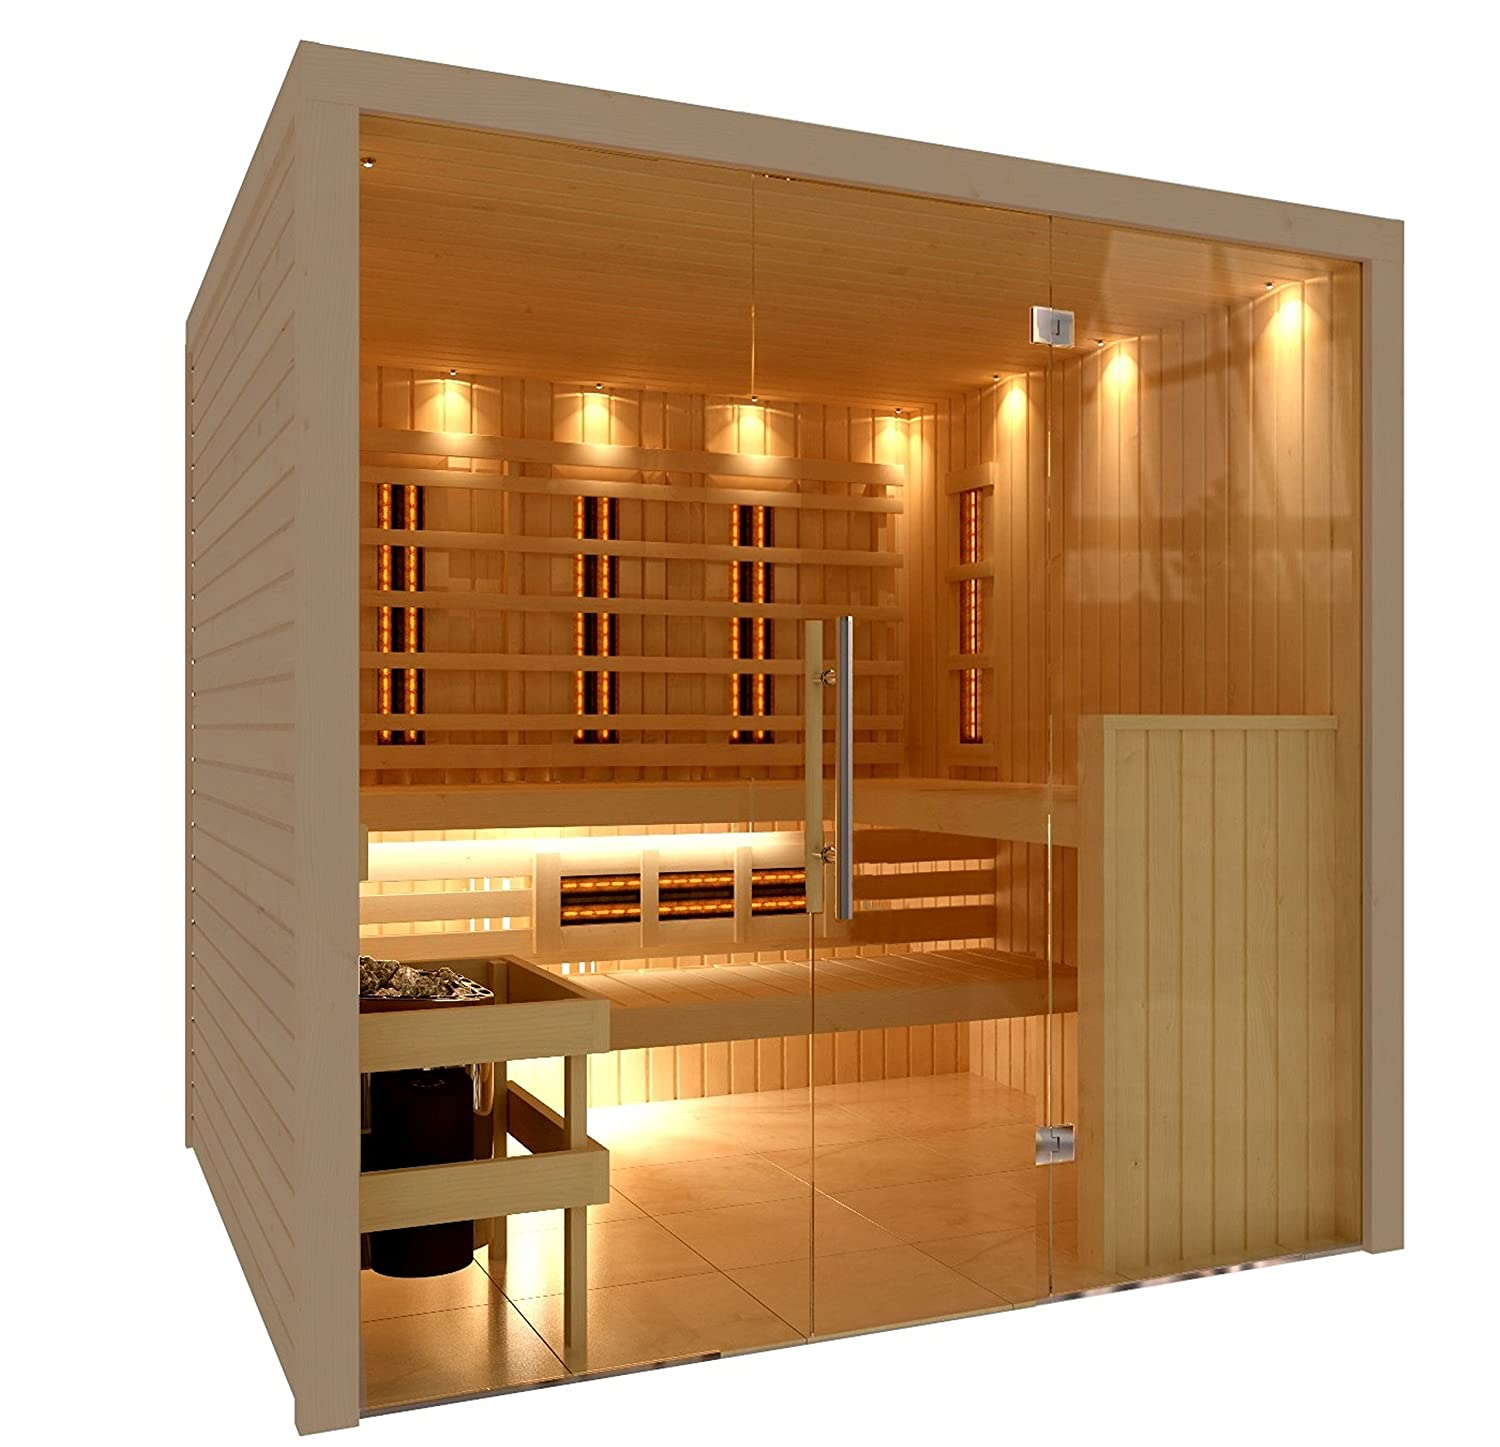 sauna mit glasfront glasfront sauna sauna mit glasfront 52 ultramoderne designs sauna mit. Black Bedroom Furniture Sets. Home Design Ideas